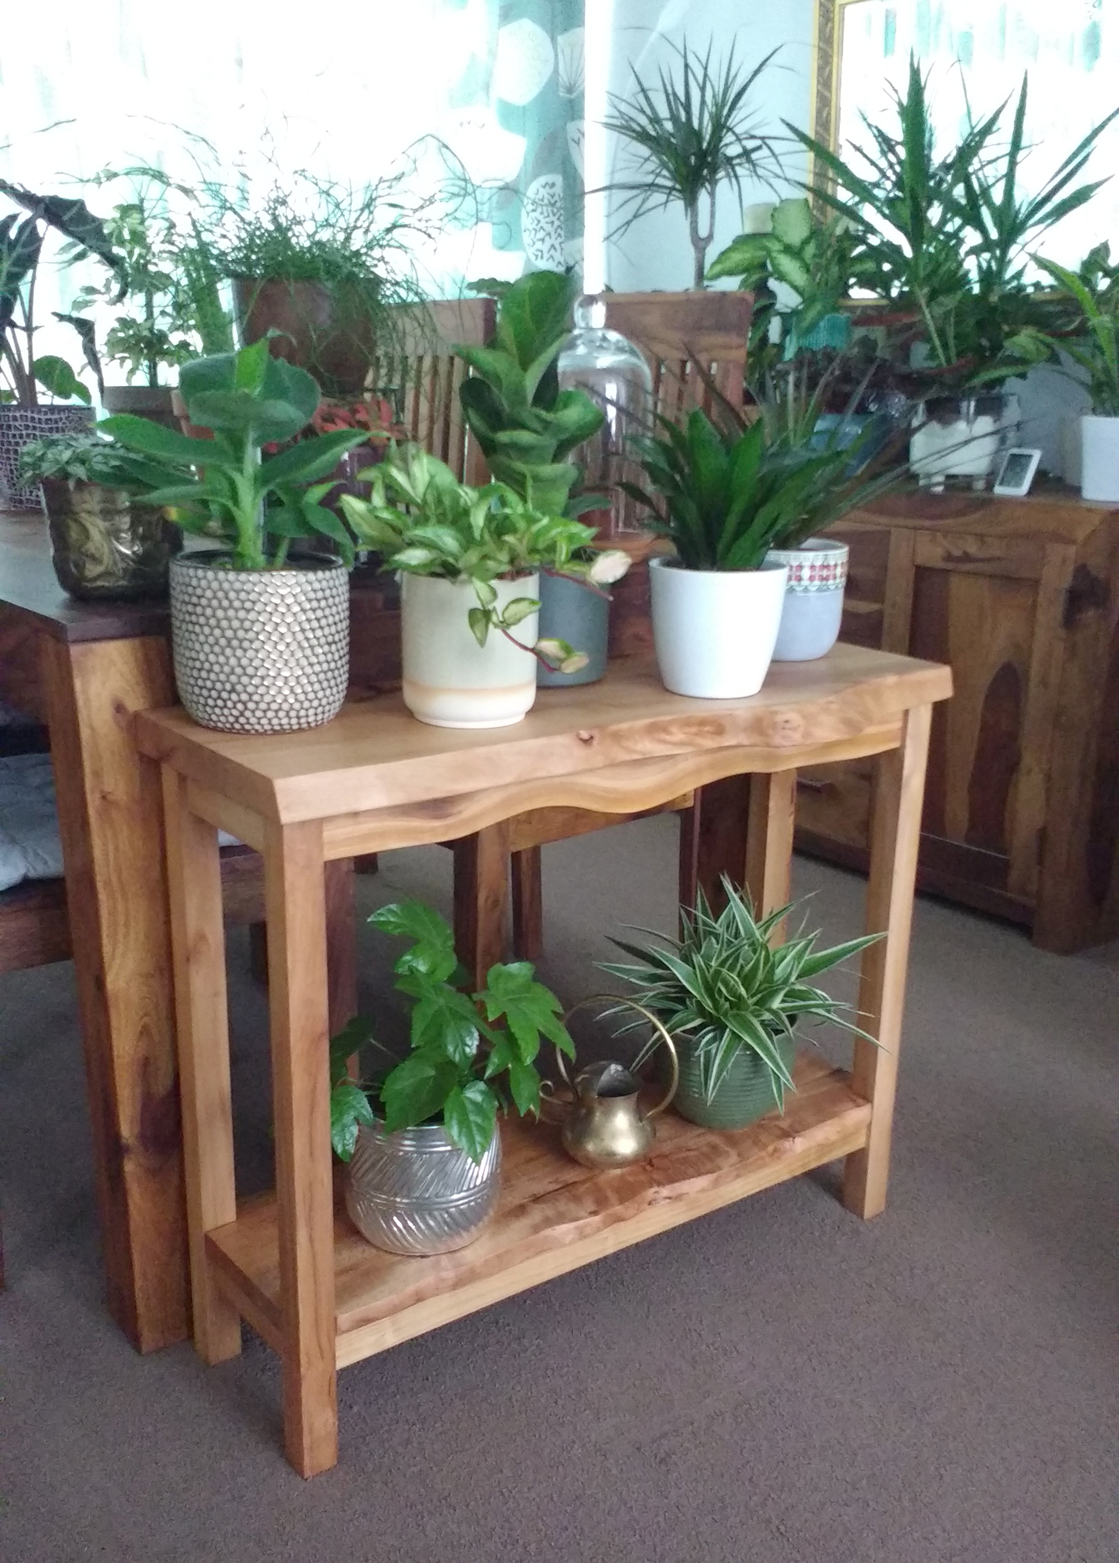 Finished Table With Plants.jpg